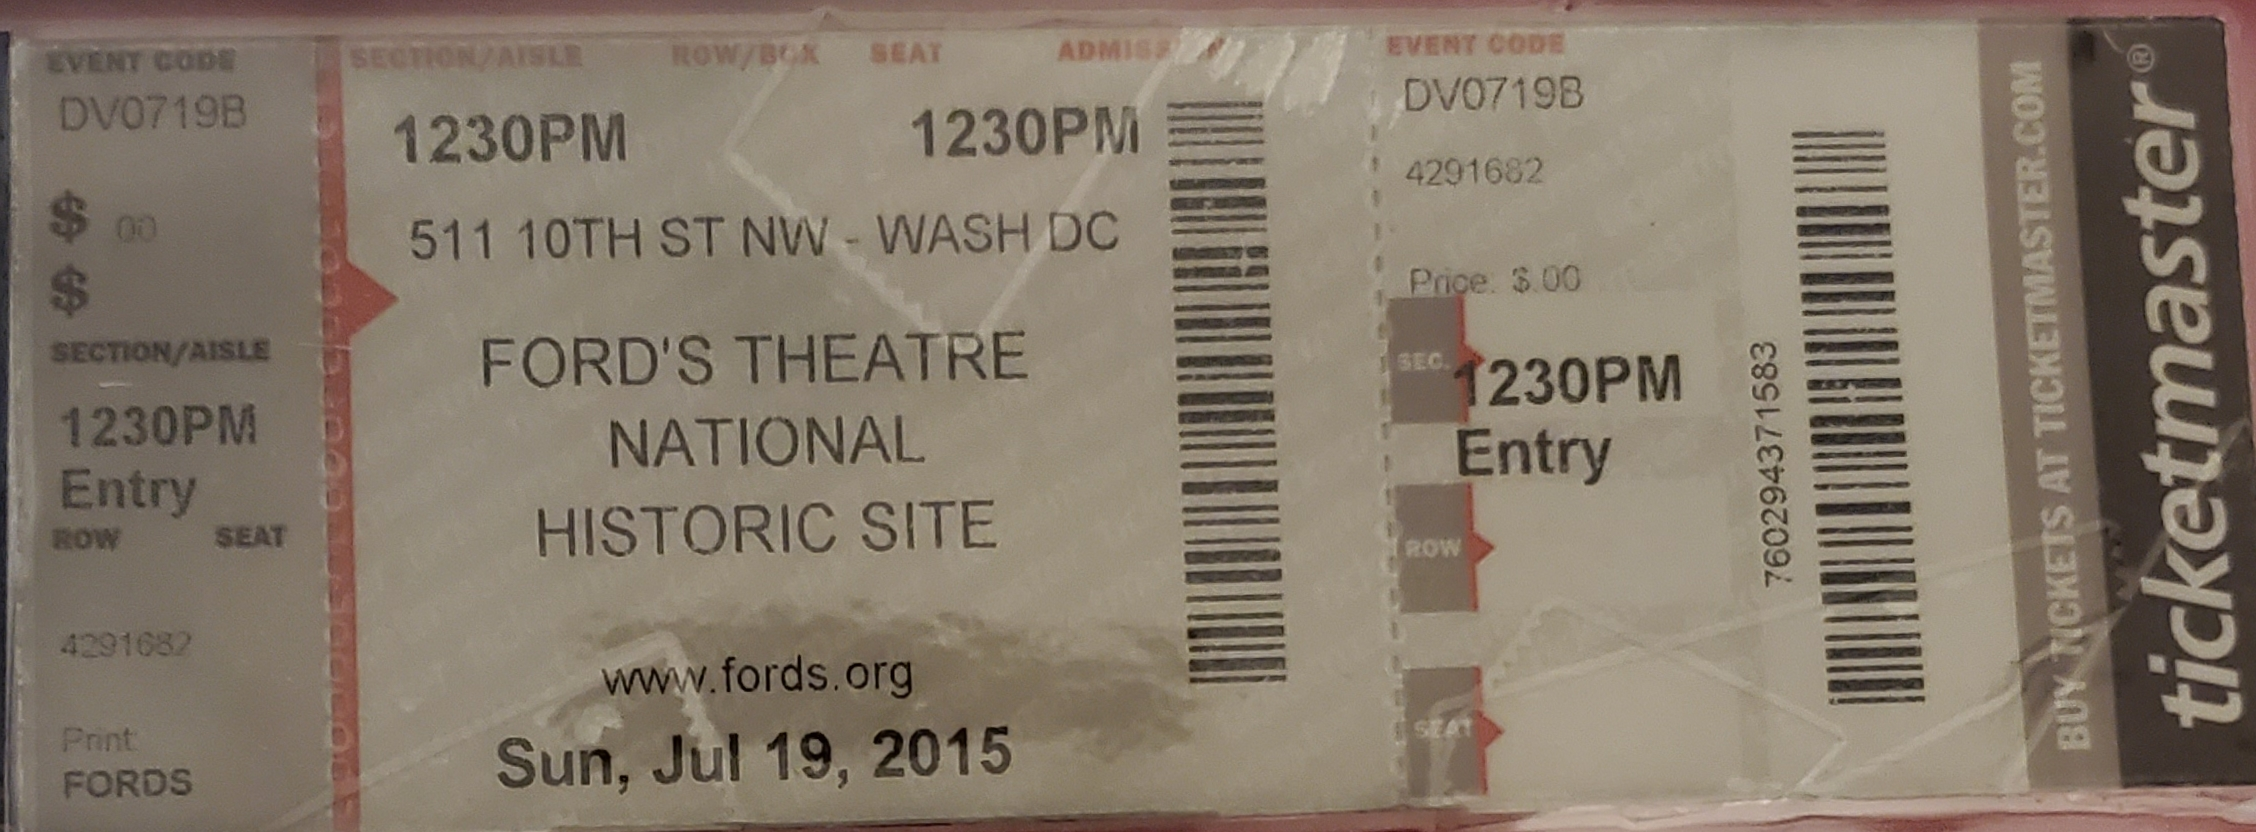 Ticket I Received When Visiting Ford's Theatre